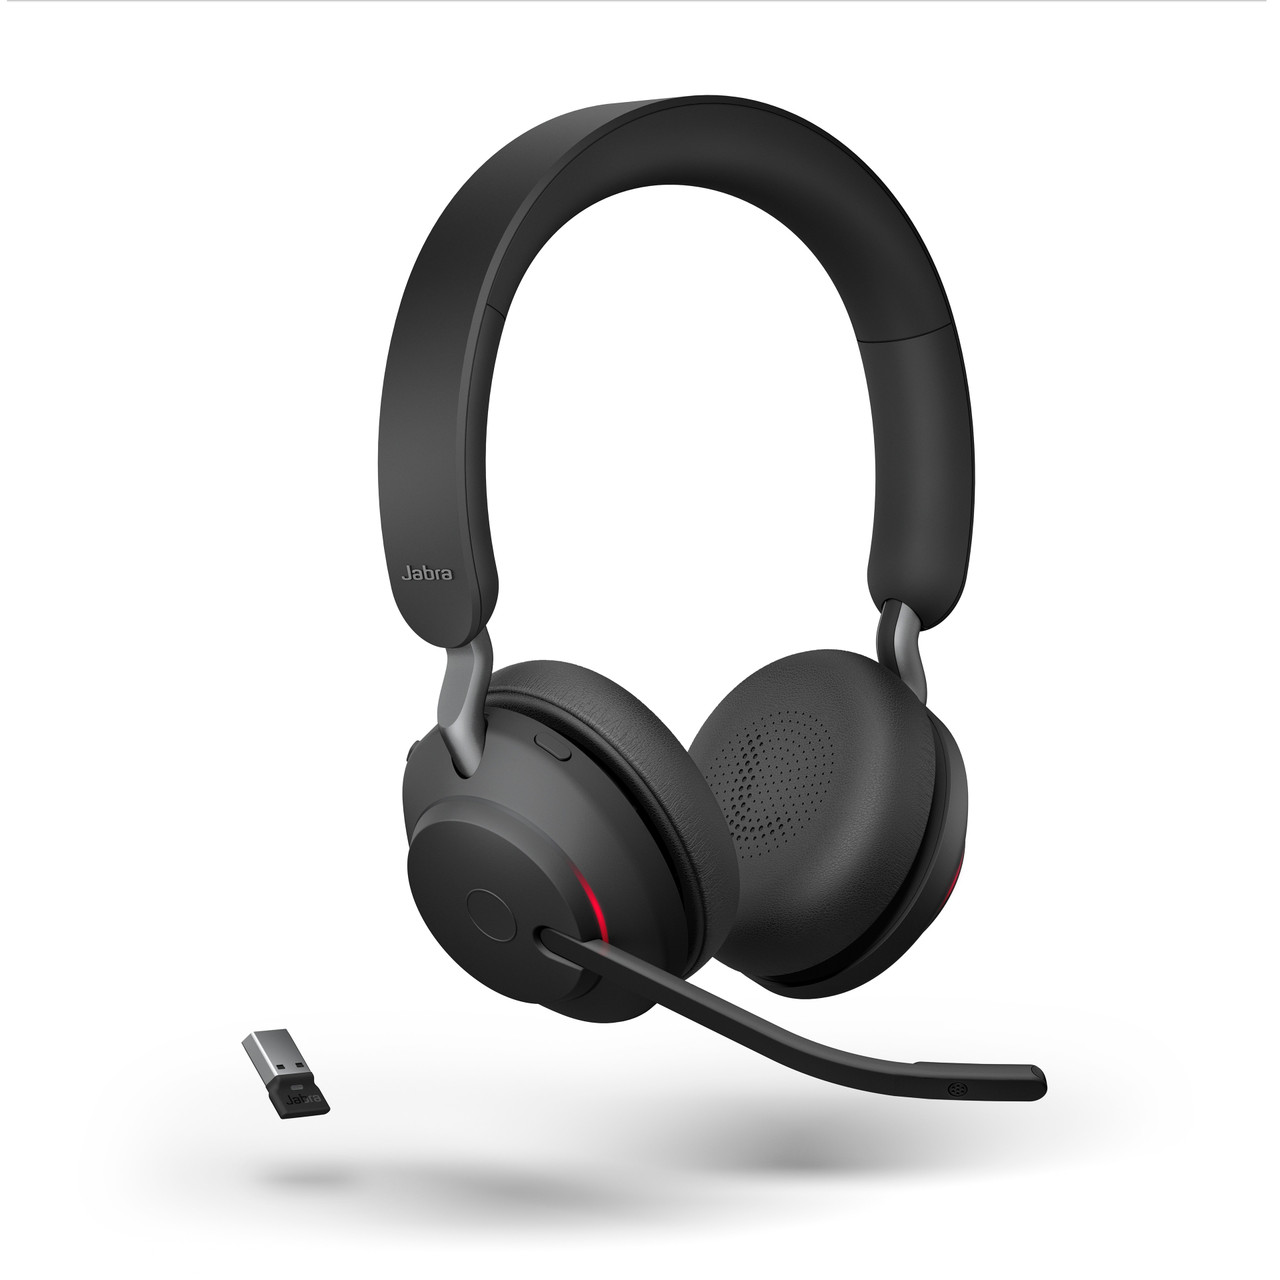 Jabra Evolve2 65 Stereo Wireless Headset Black Ms Version Includes Usb Bluetooth Dongle